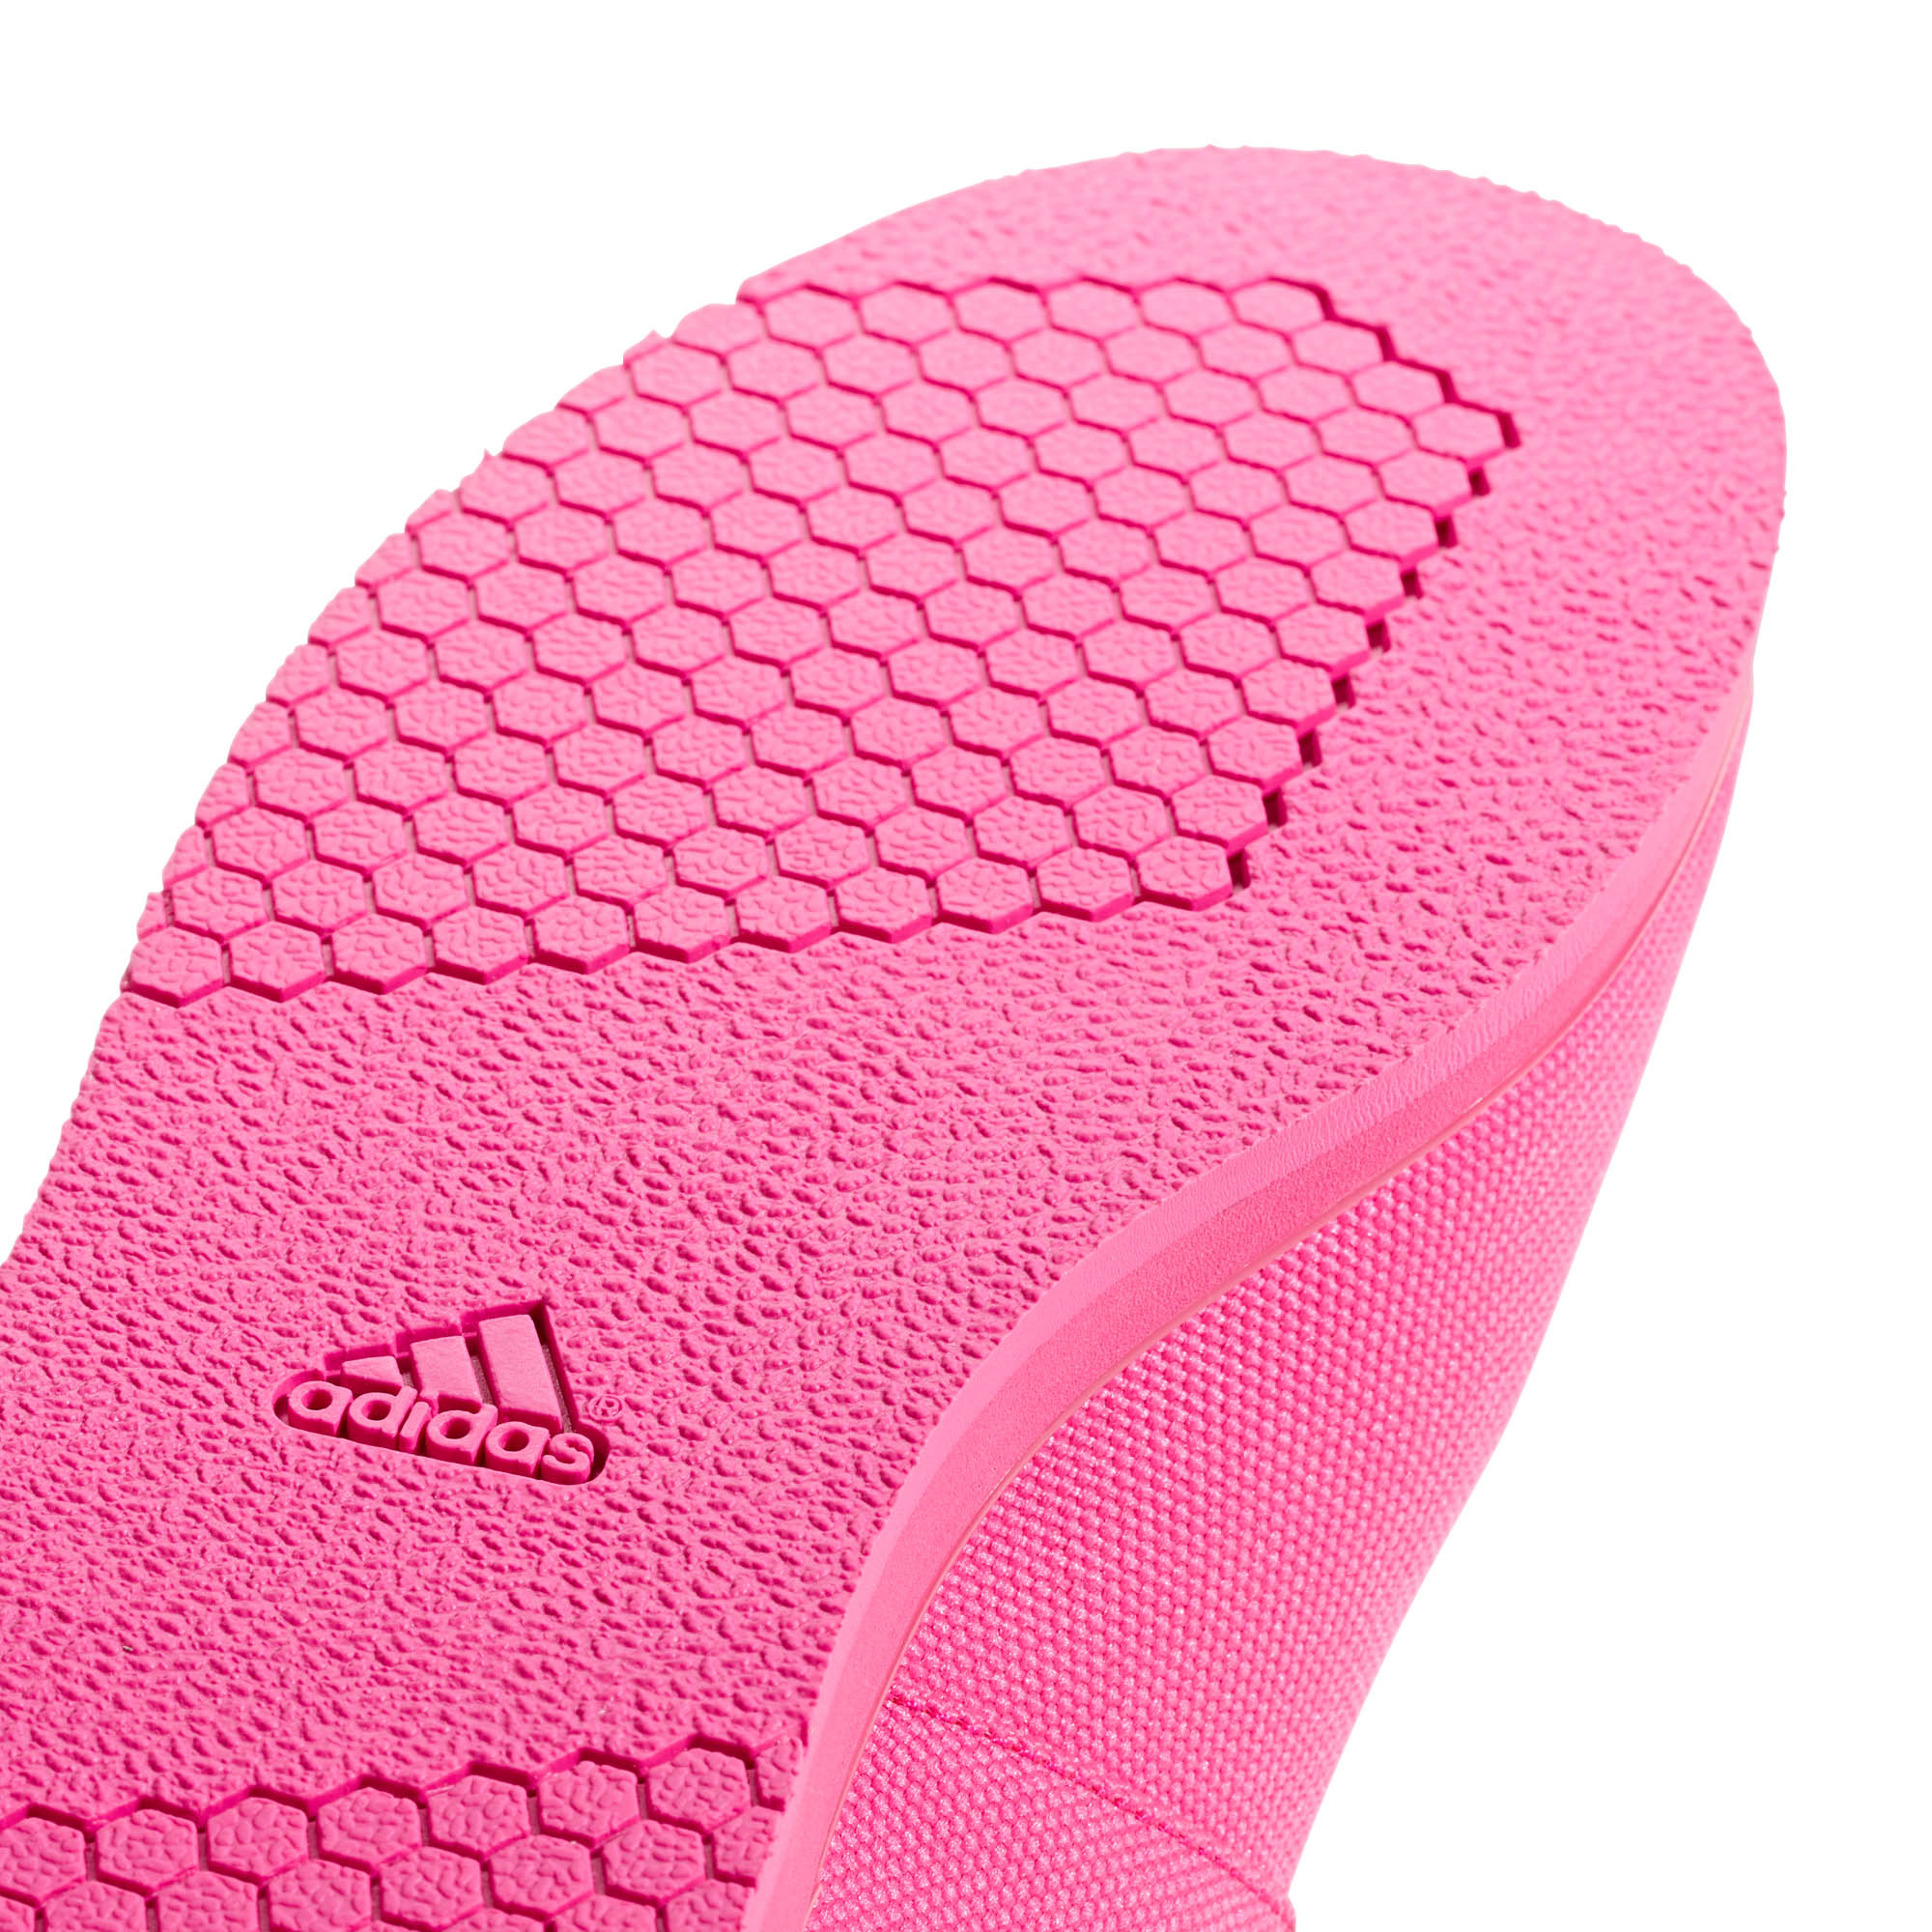 381fa23370 adidas Powerlift 4 Womens Adult Weightlifting Powerlifting Shoe Pink ...